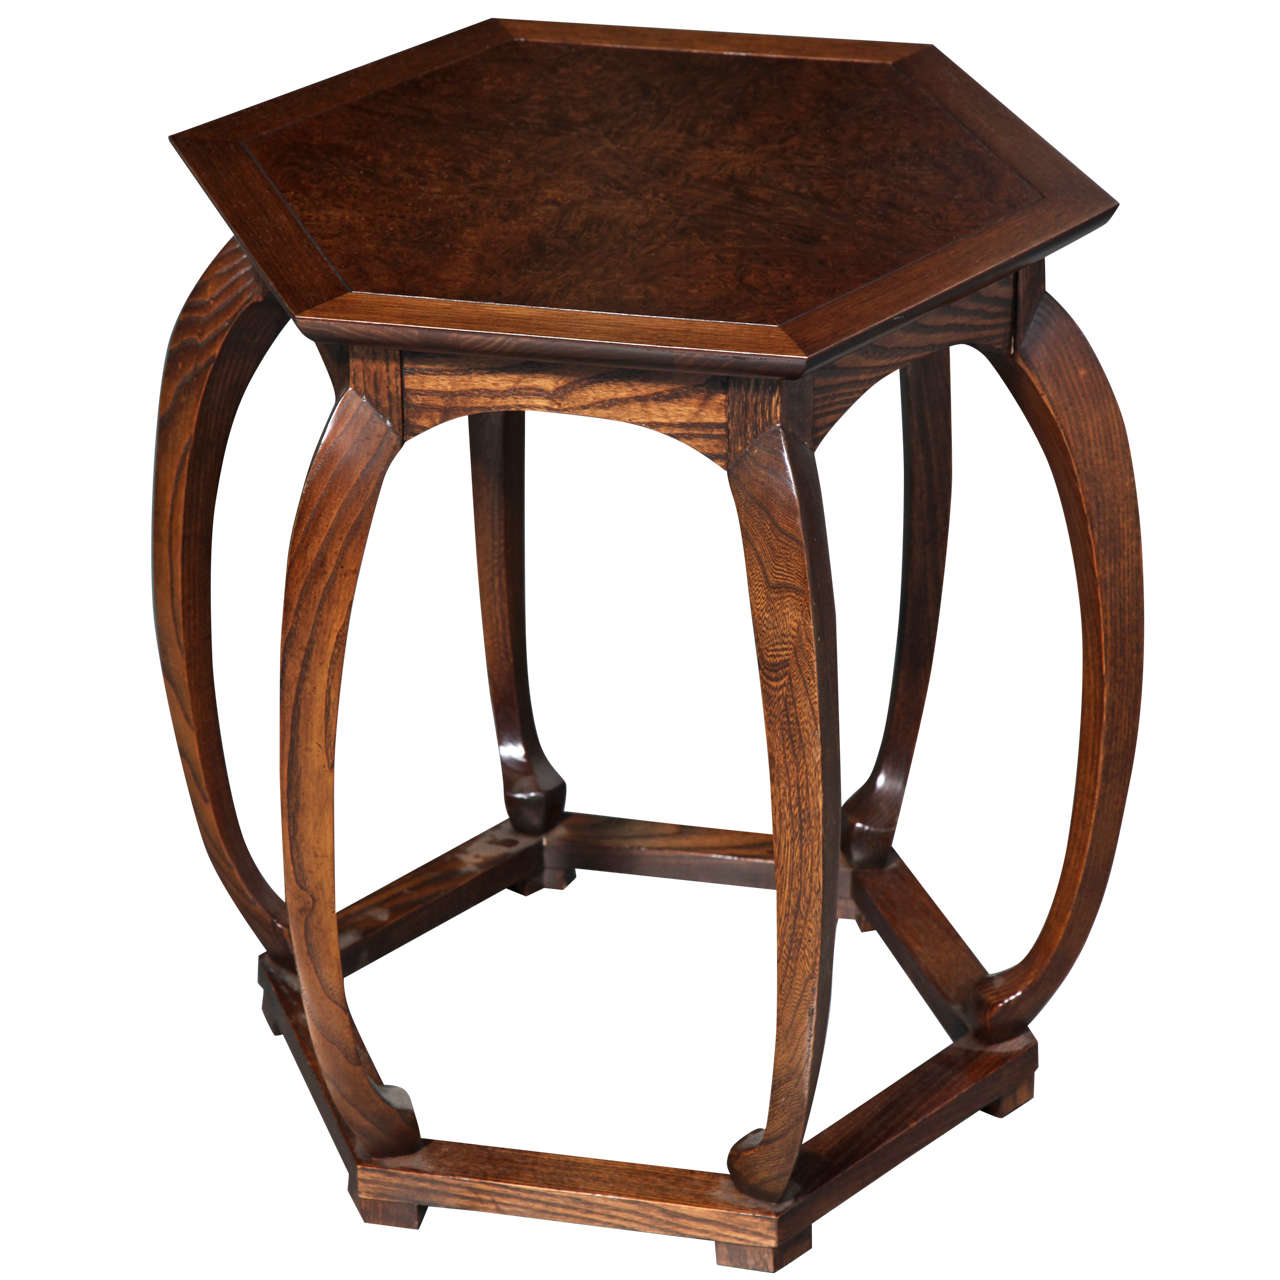 Baker furniture chinese style hexagonal table at 1stdibs for Chinese style furniture for sale